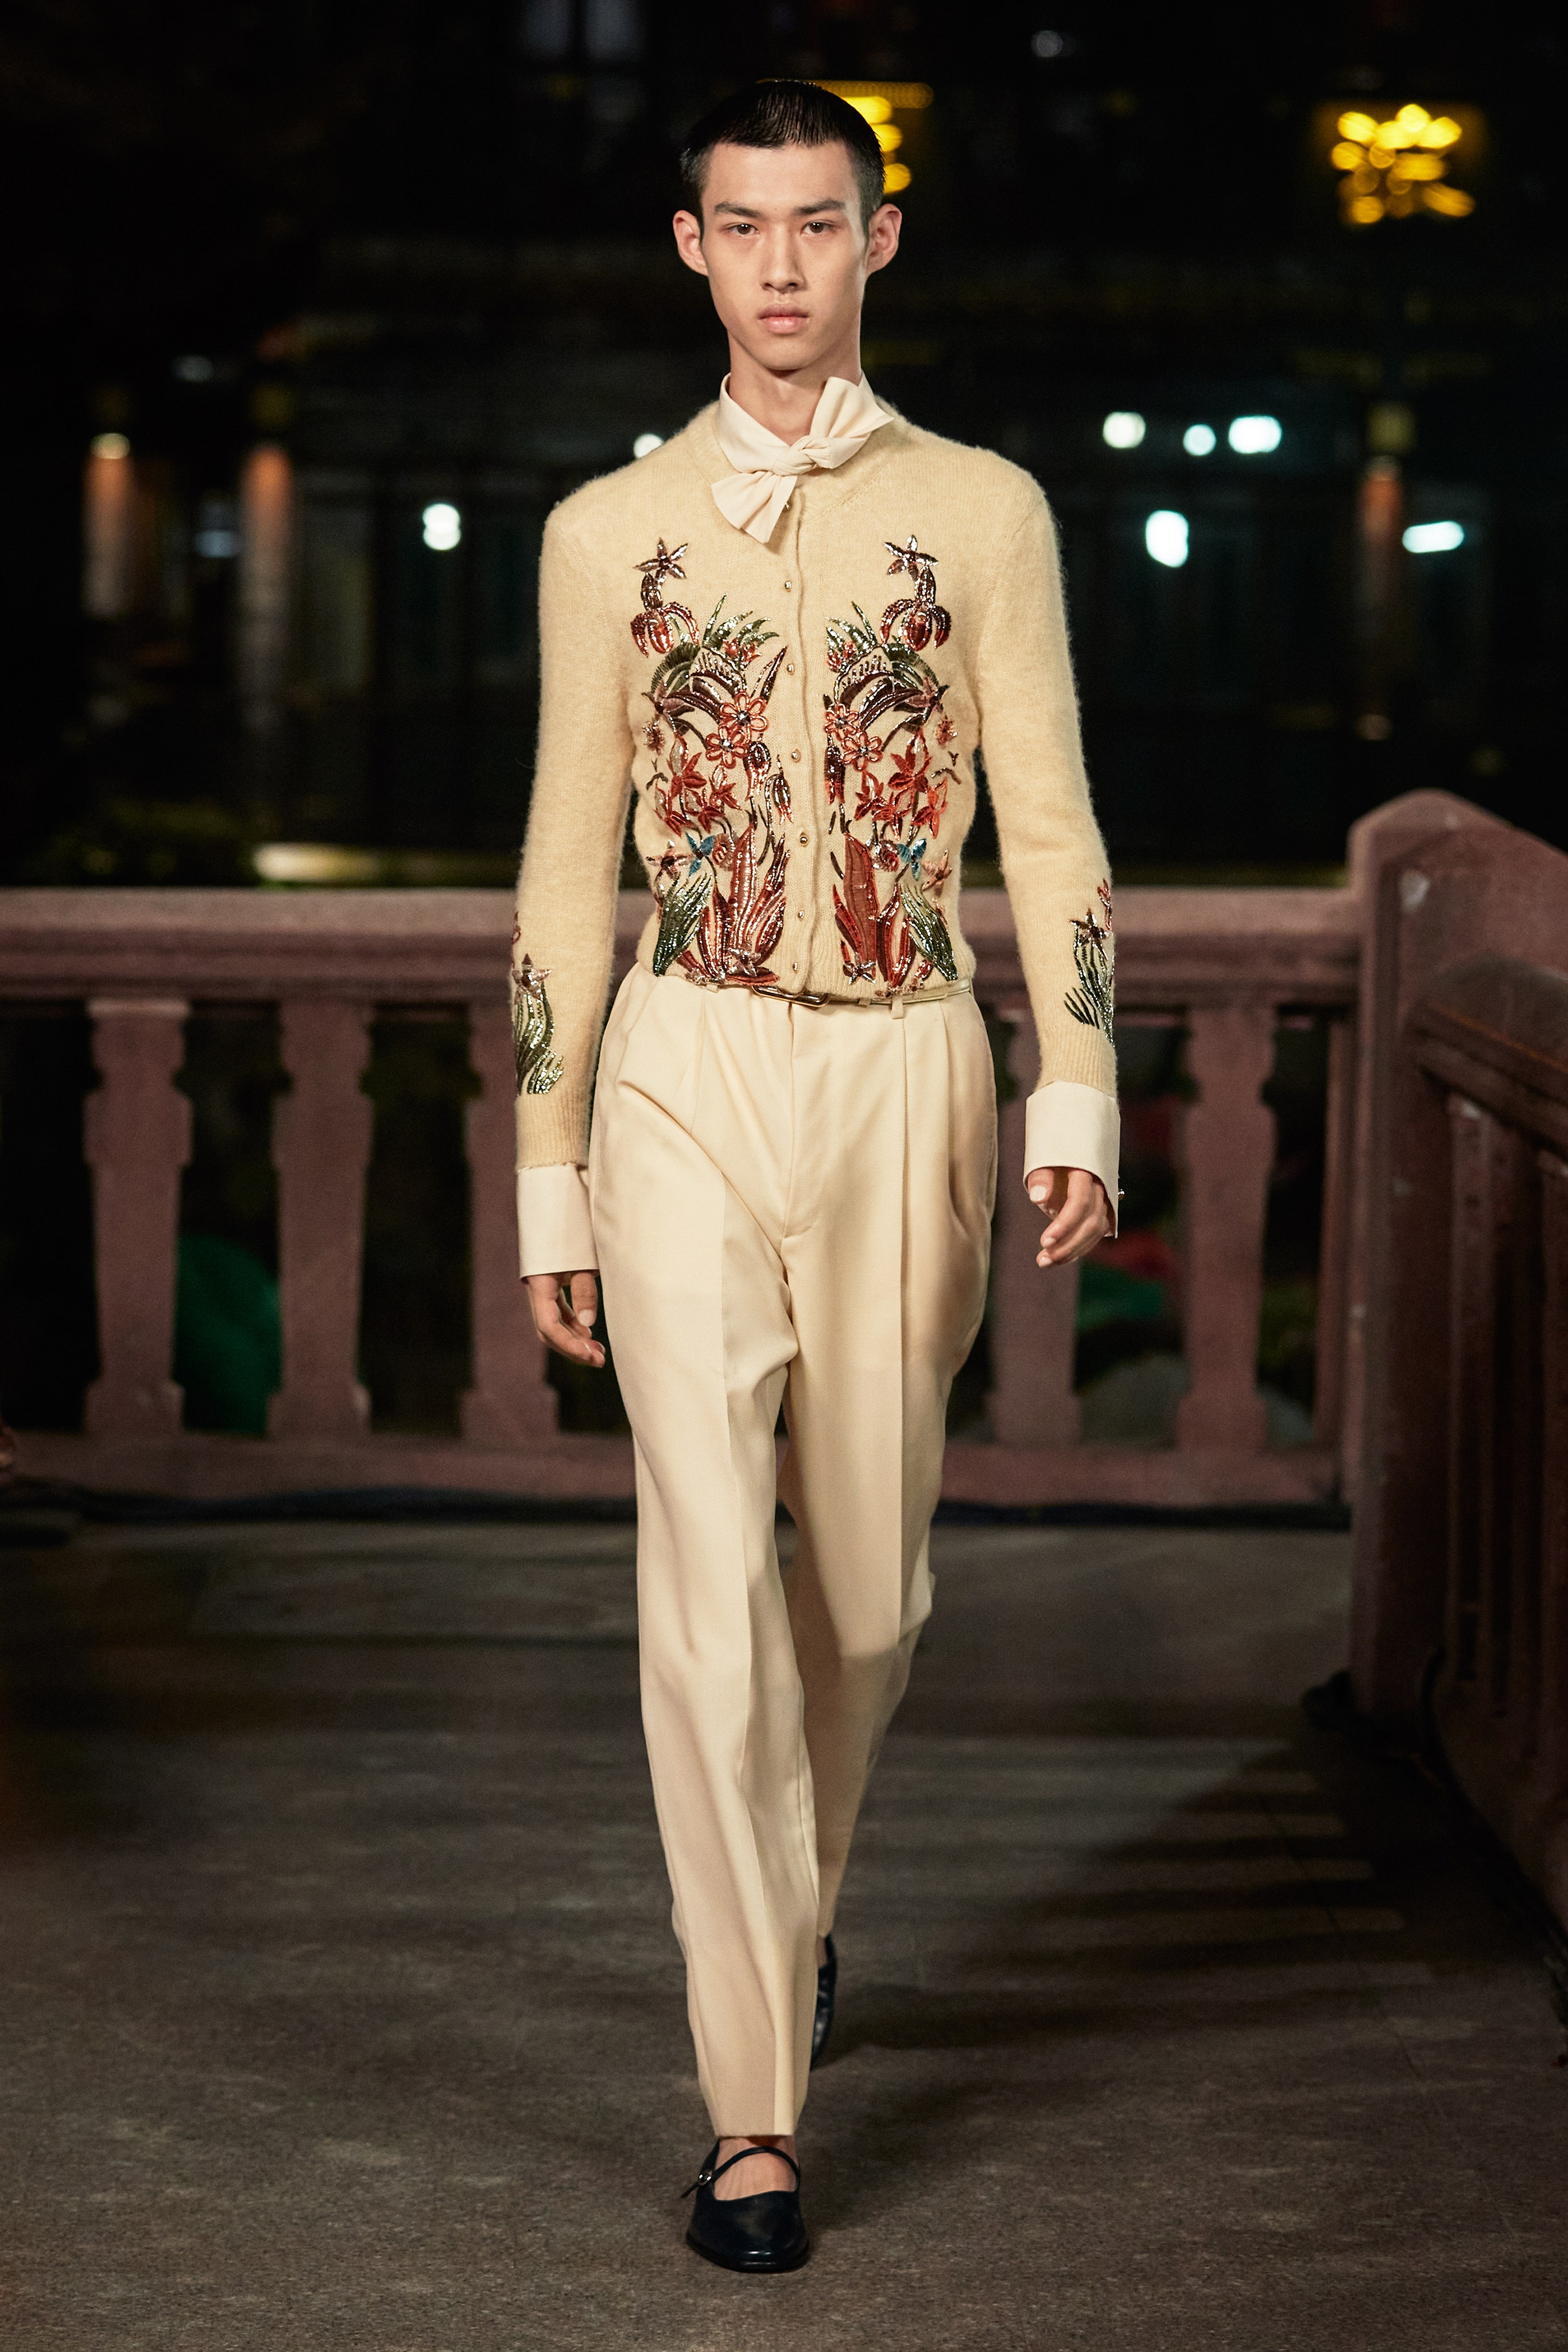 Lanvin Spring 2021 ready-to-wear